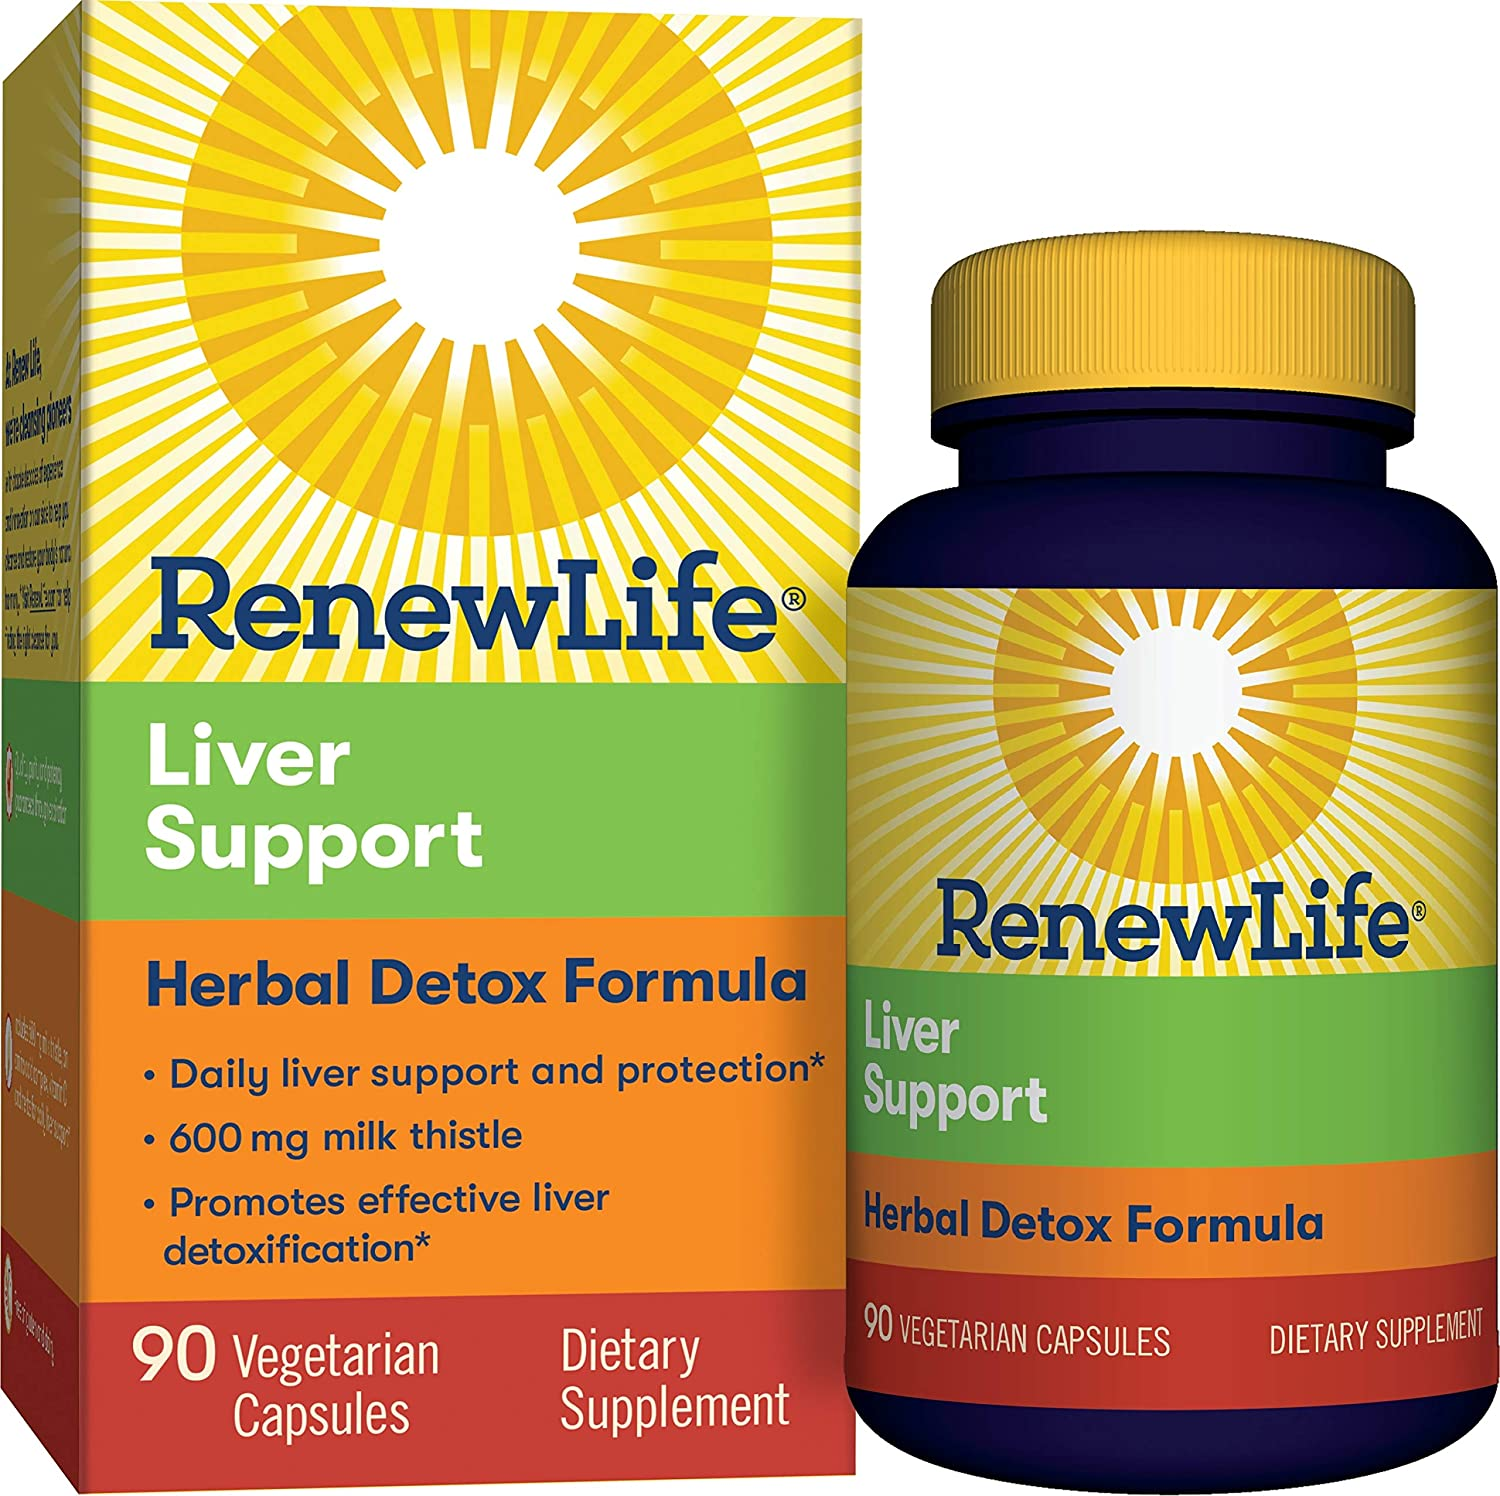 Renew Life - Extra Care Liver Support 600mg Milk Thistle 90ct